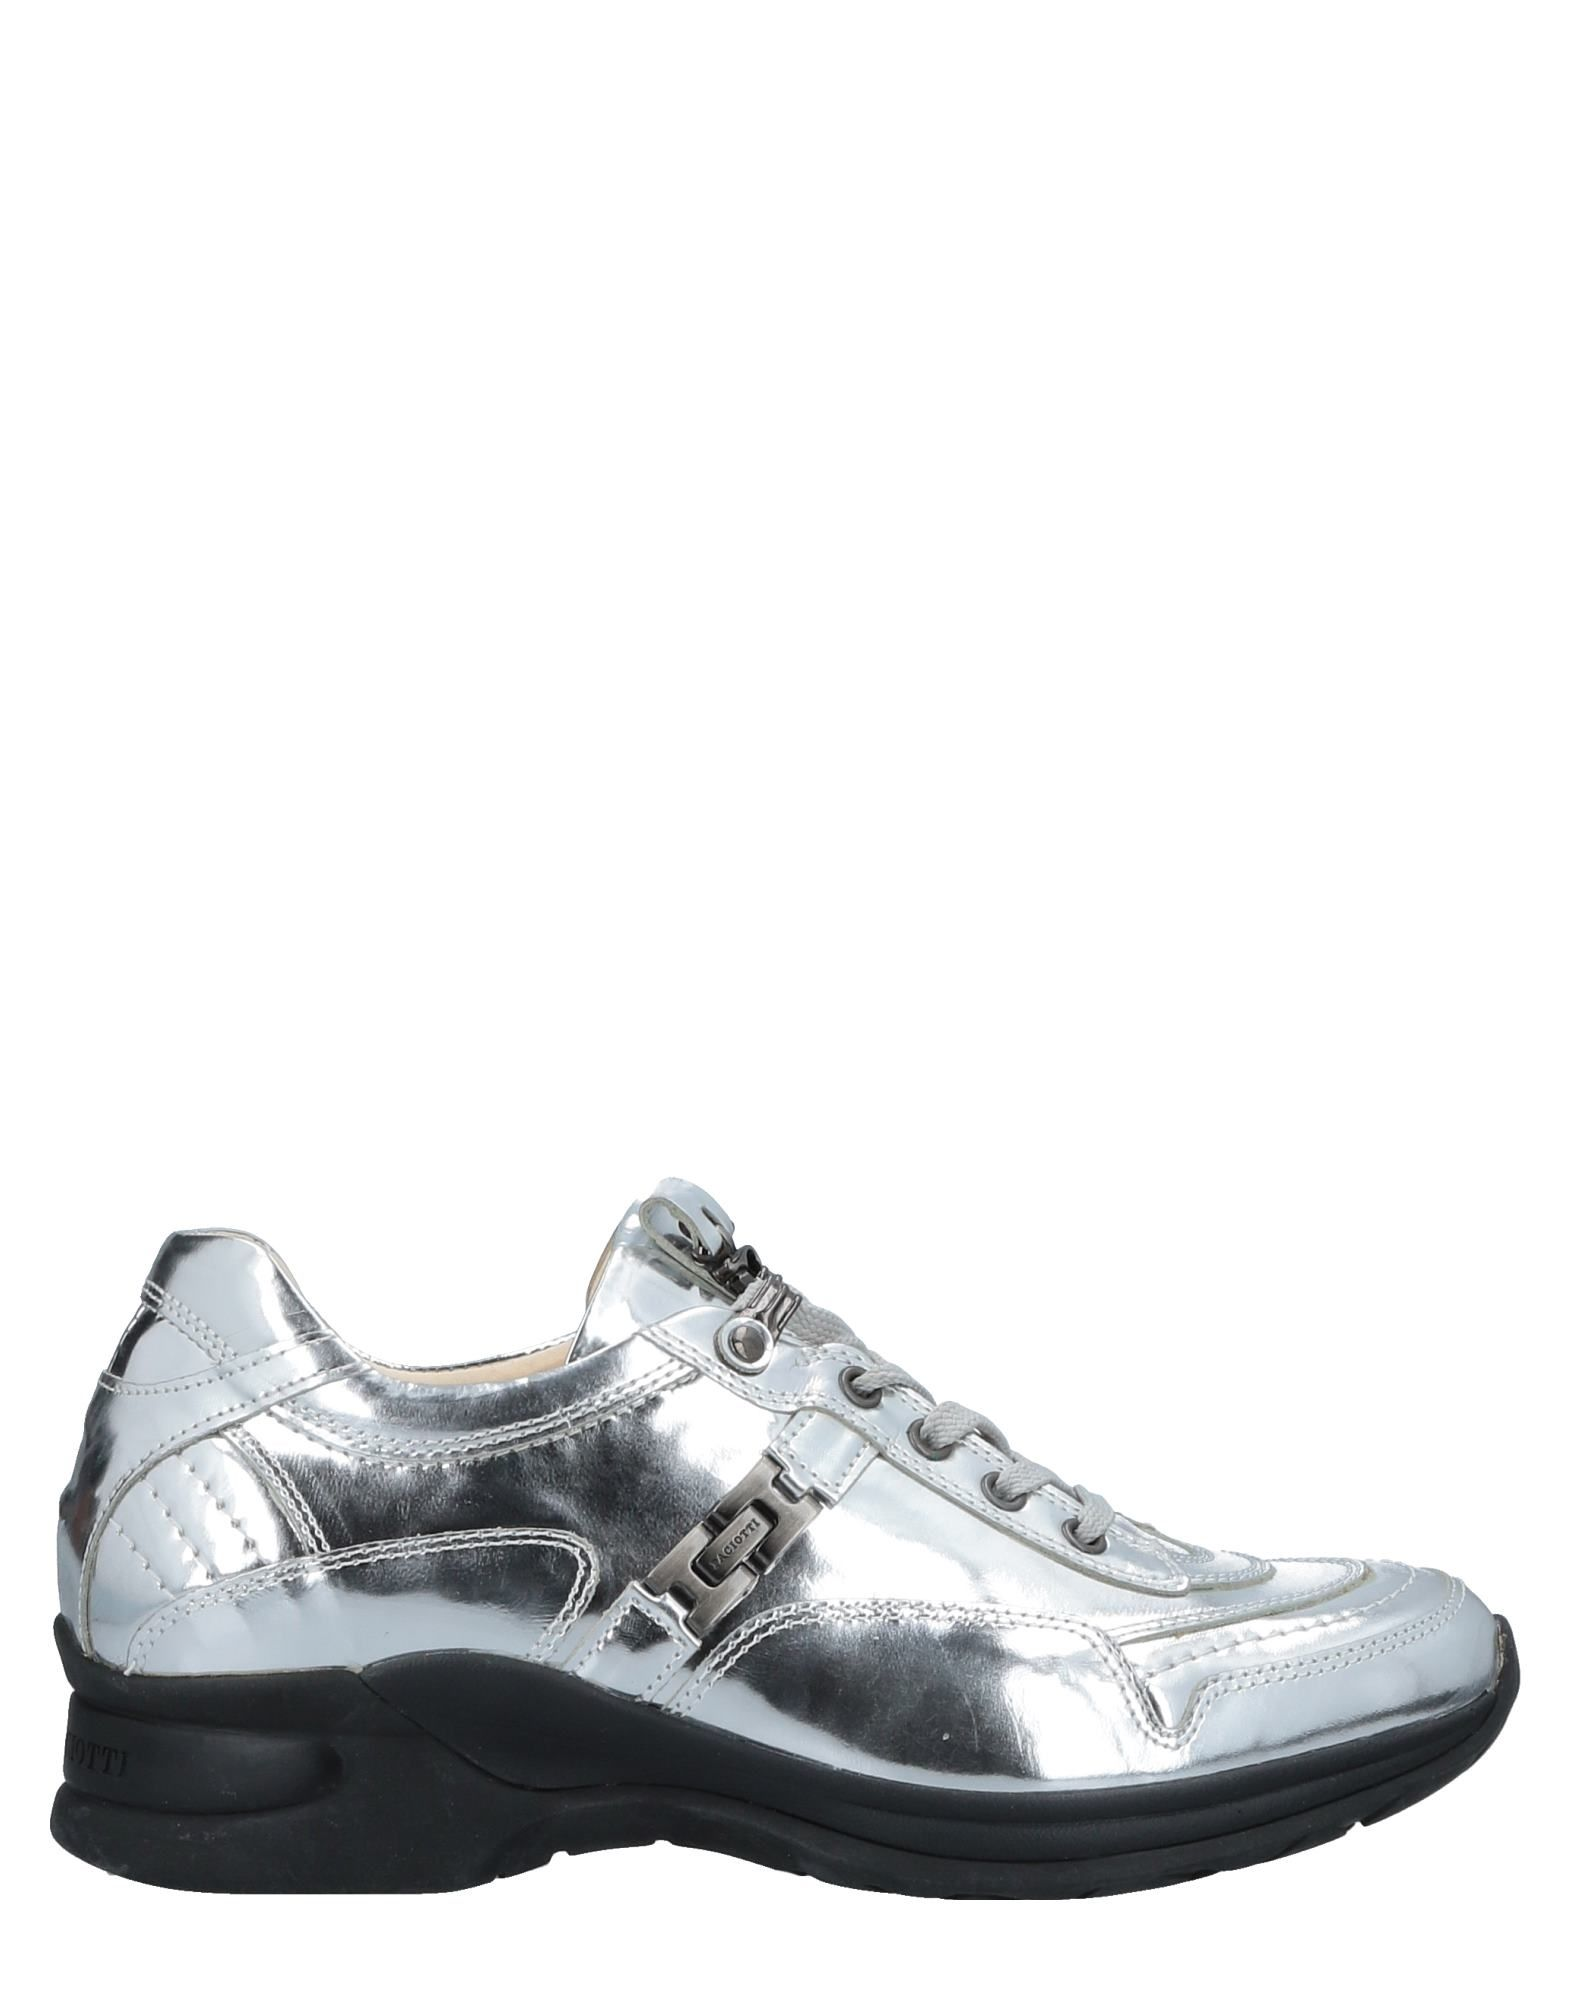 Sneakers - Cesare Paciotti 4Us Donna - Sneakers 11513829HJ 300a69